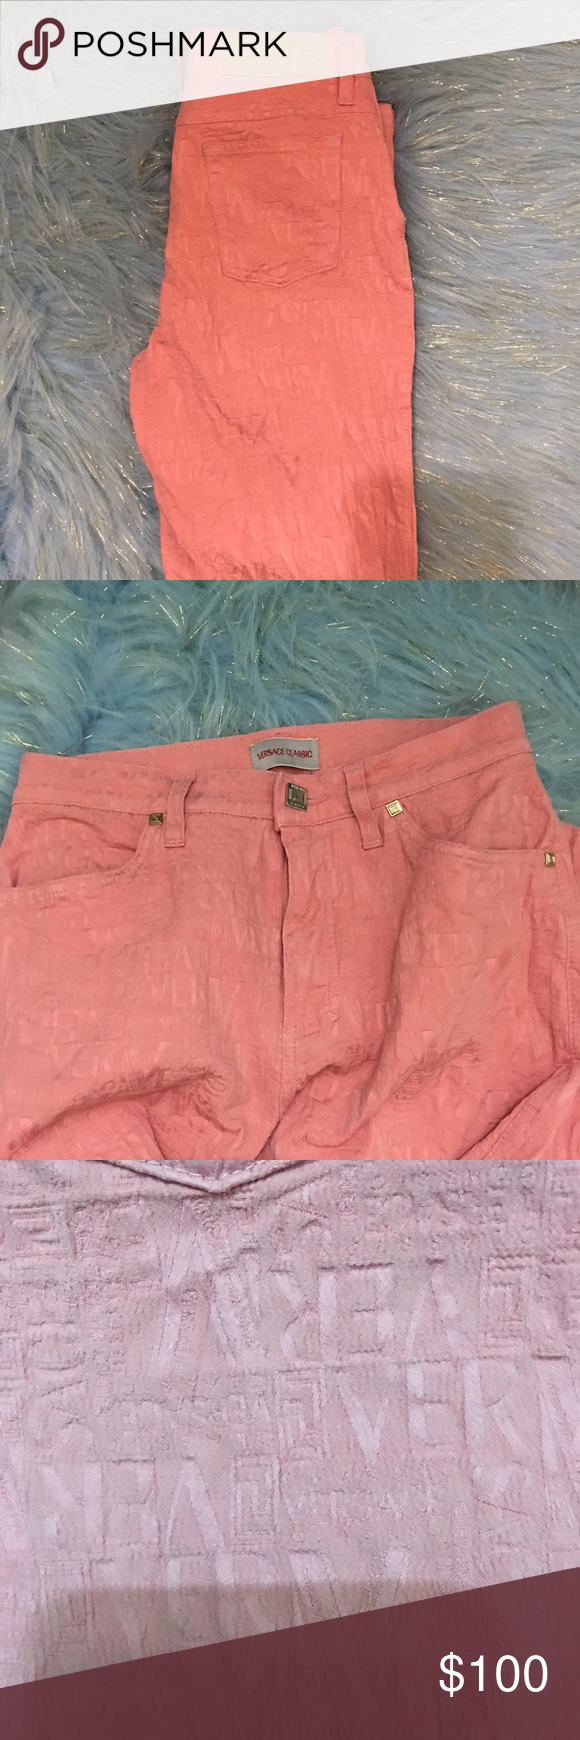 Vesace Classic women's pants Pretty in pink Versace Classic pants. They're embossed cotton/elastic blend. They need dry cleaned, they've got wrinkles from being stored. Versace Pants